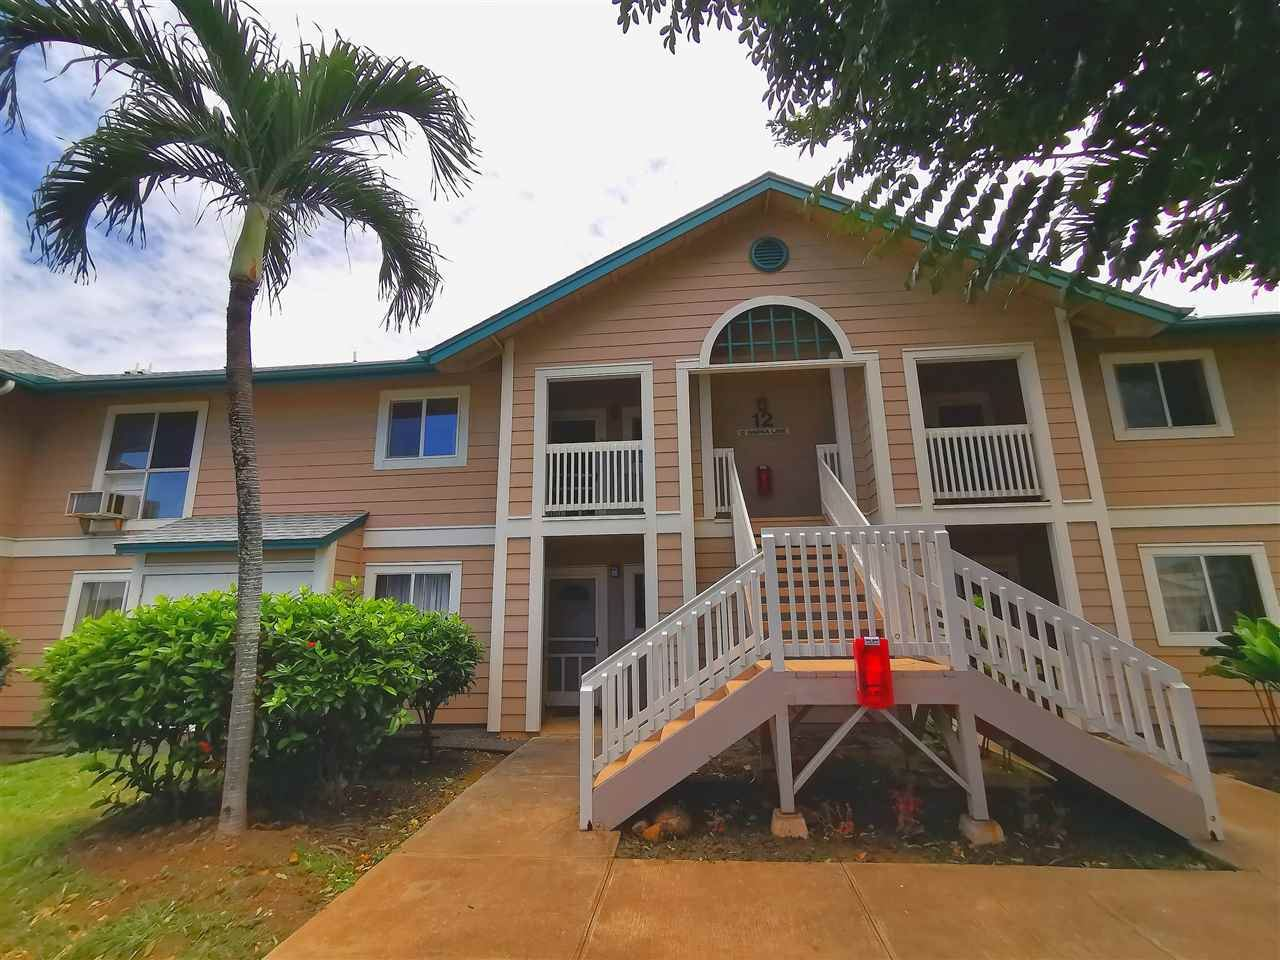 Photo of 12 Waipaa Ln #42-203, Wailuku, HI 96793 (MLS # 387101)